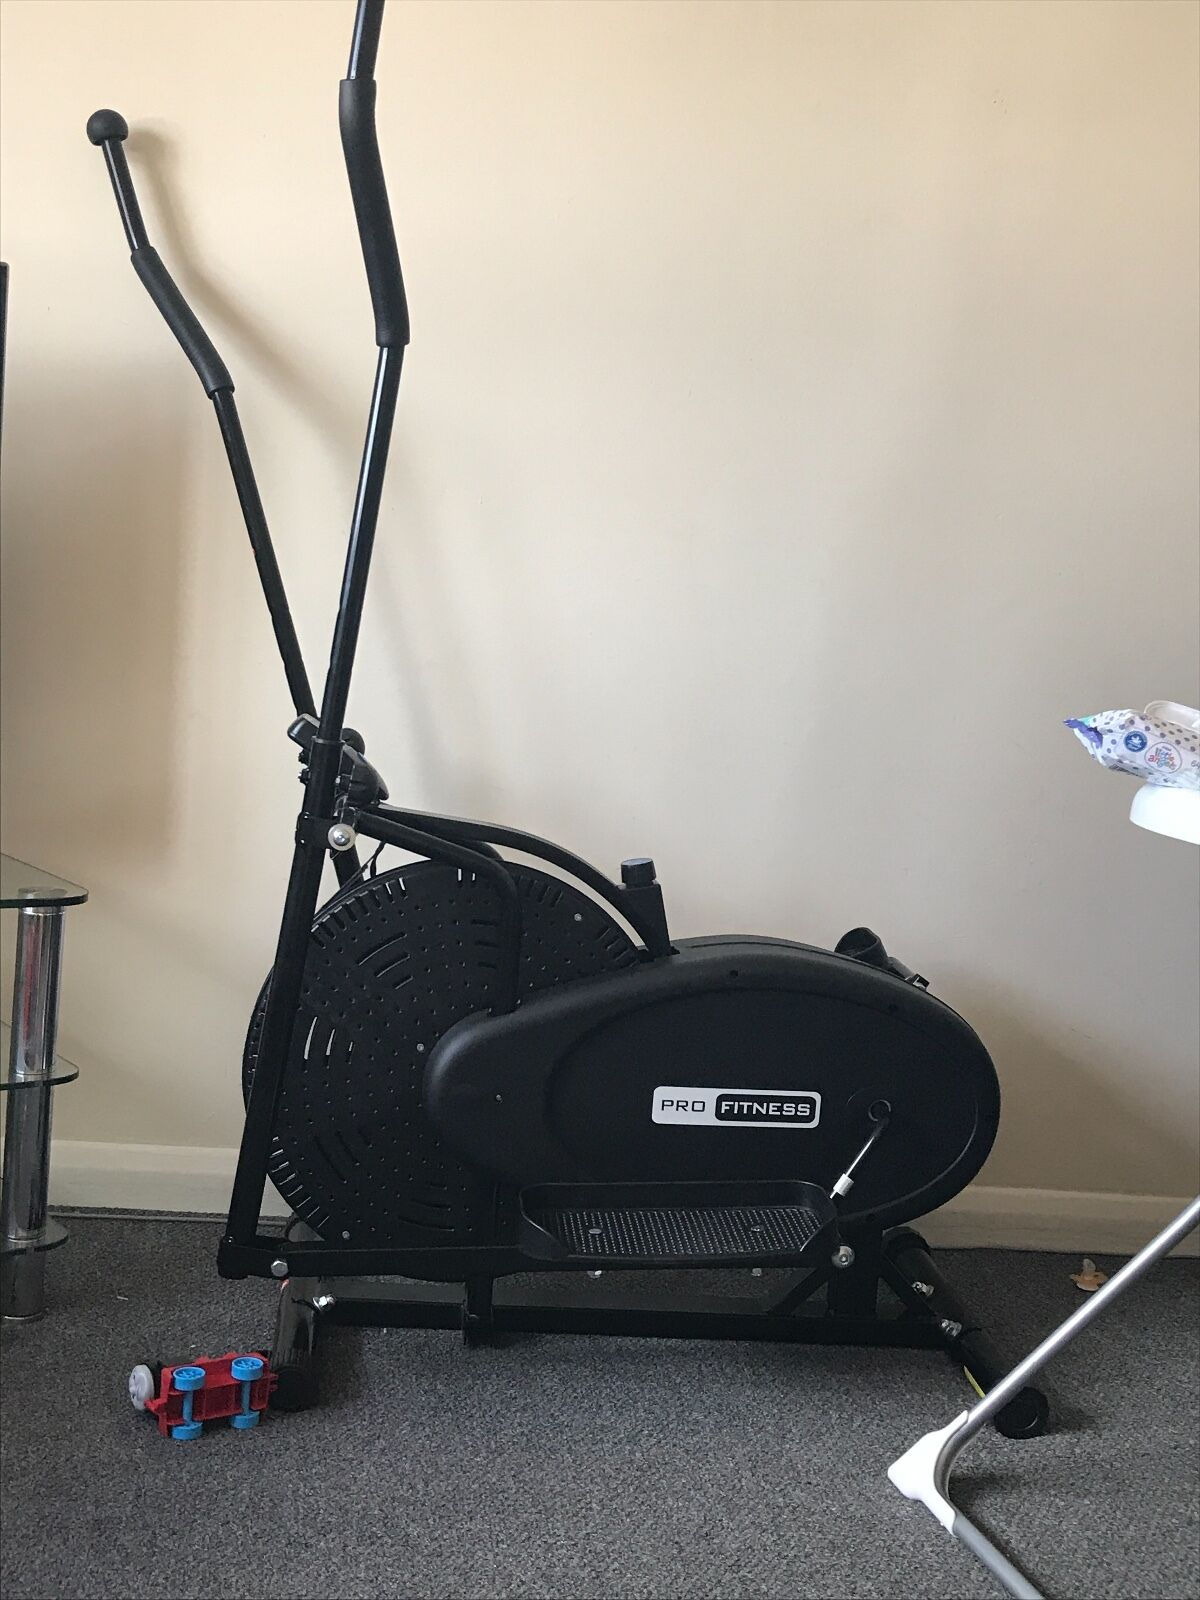 Pro Fitness Cross Trainer  Excellent condition